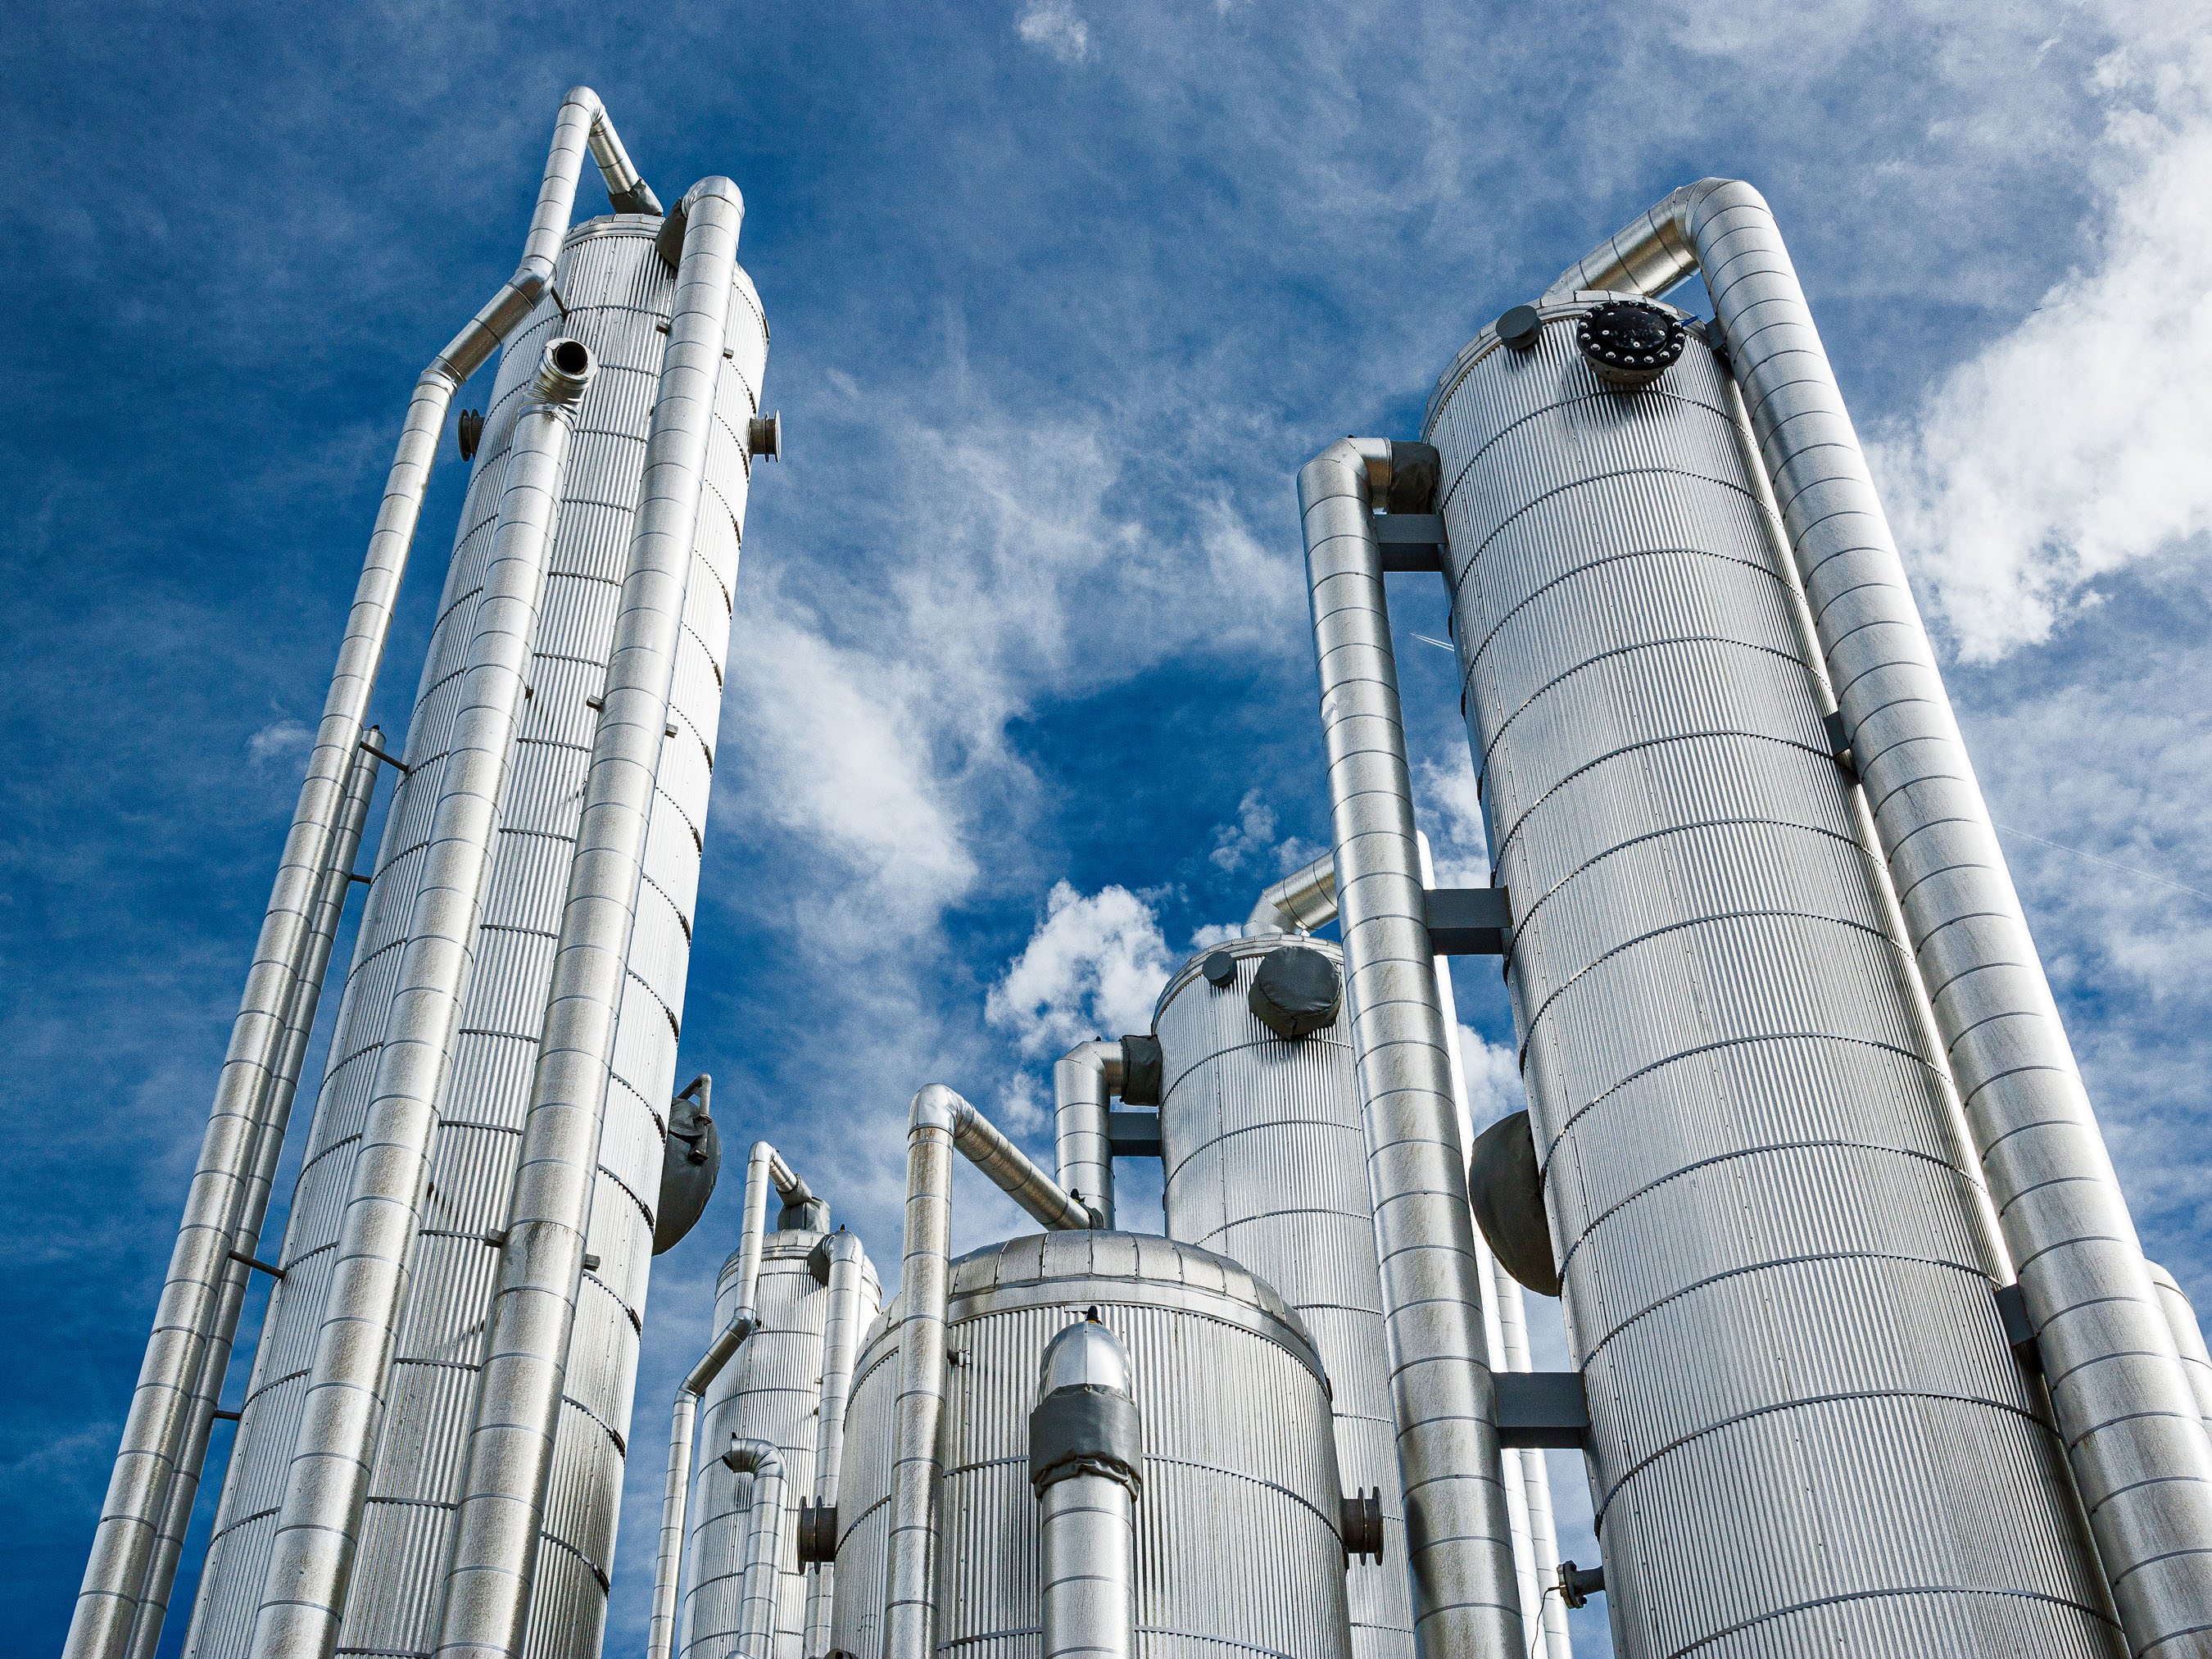 Architecture photography of Heartland Biogas plant located in LaSalle, Colorado.